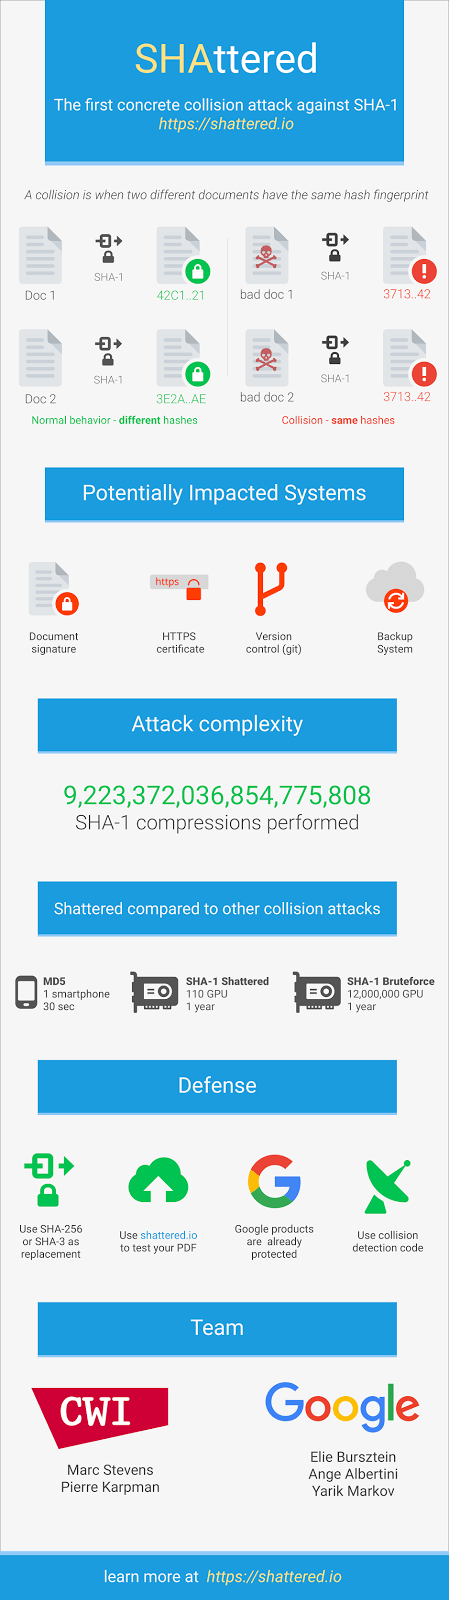 shattered-infographic